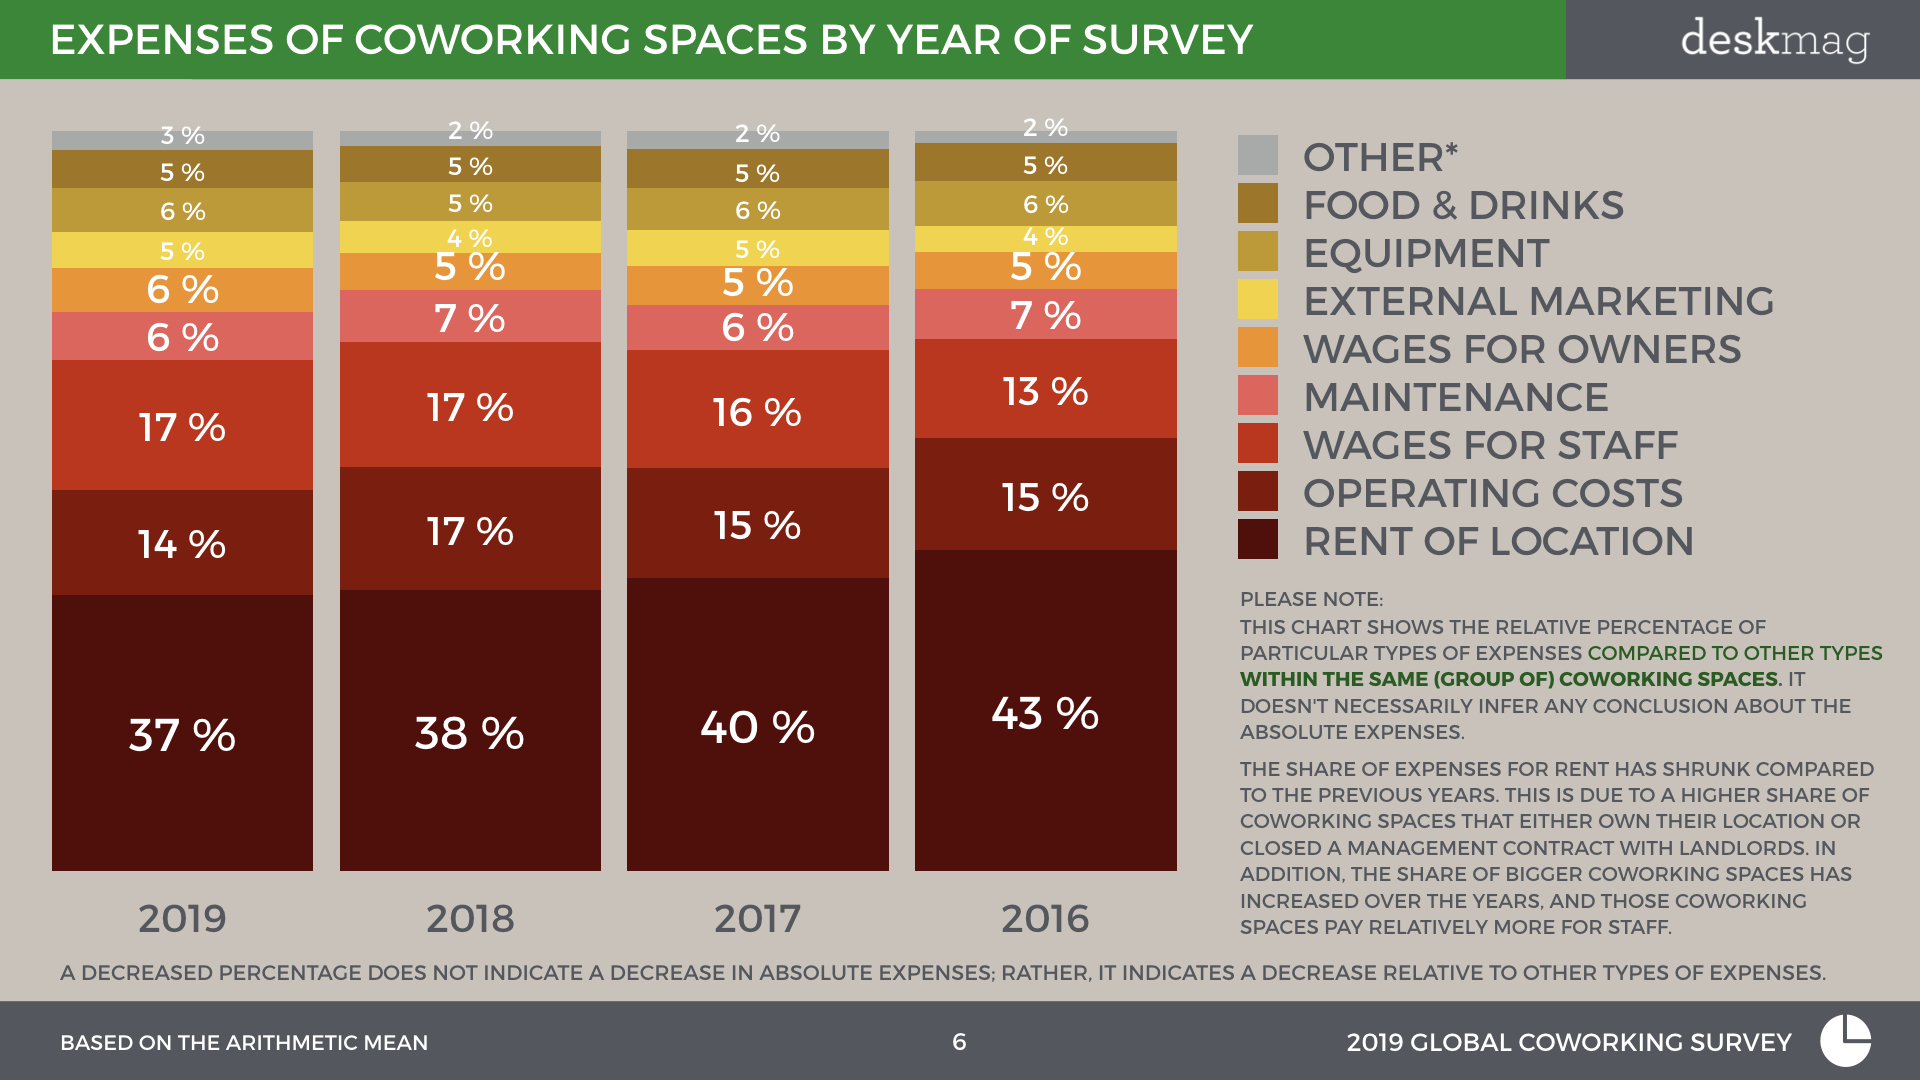 Expenses of coworking spaces by year of survey